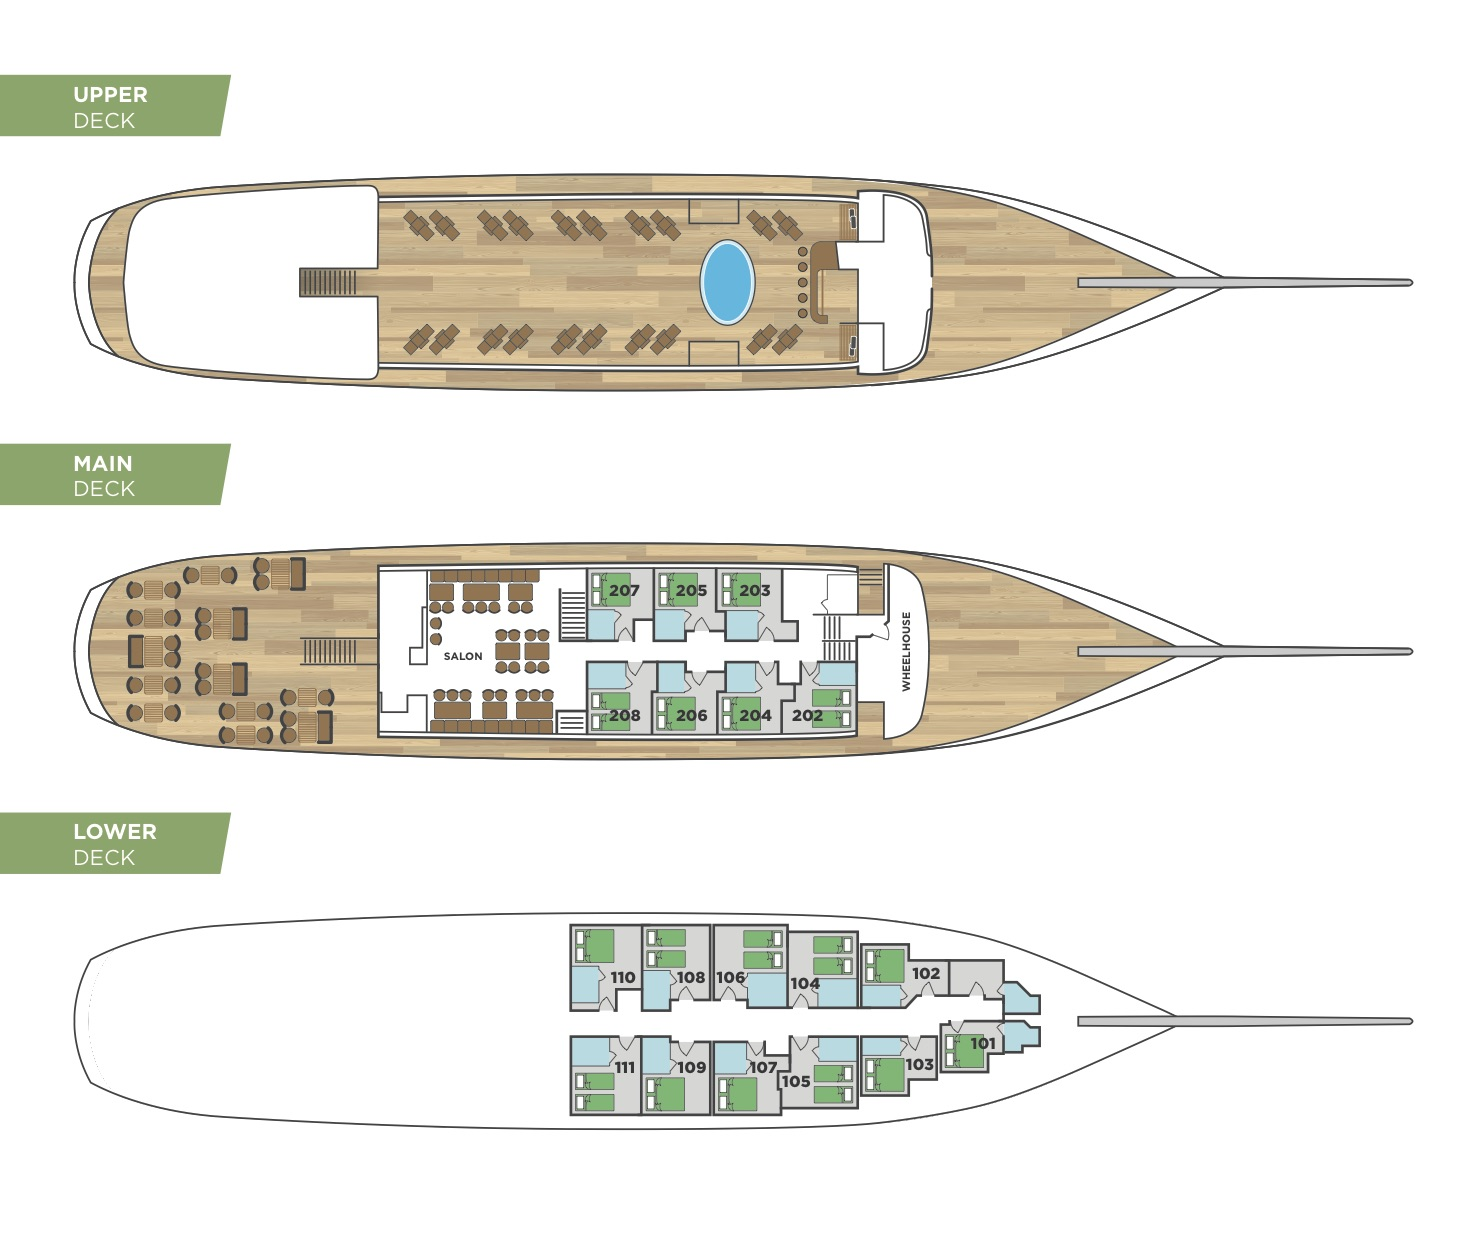 Cabin layout for Klara